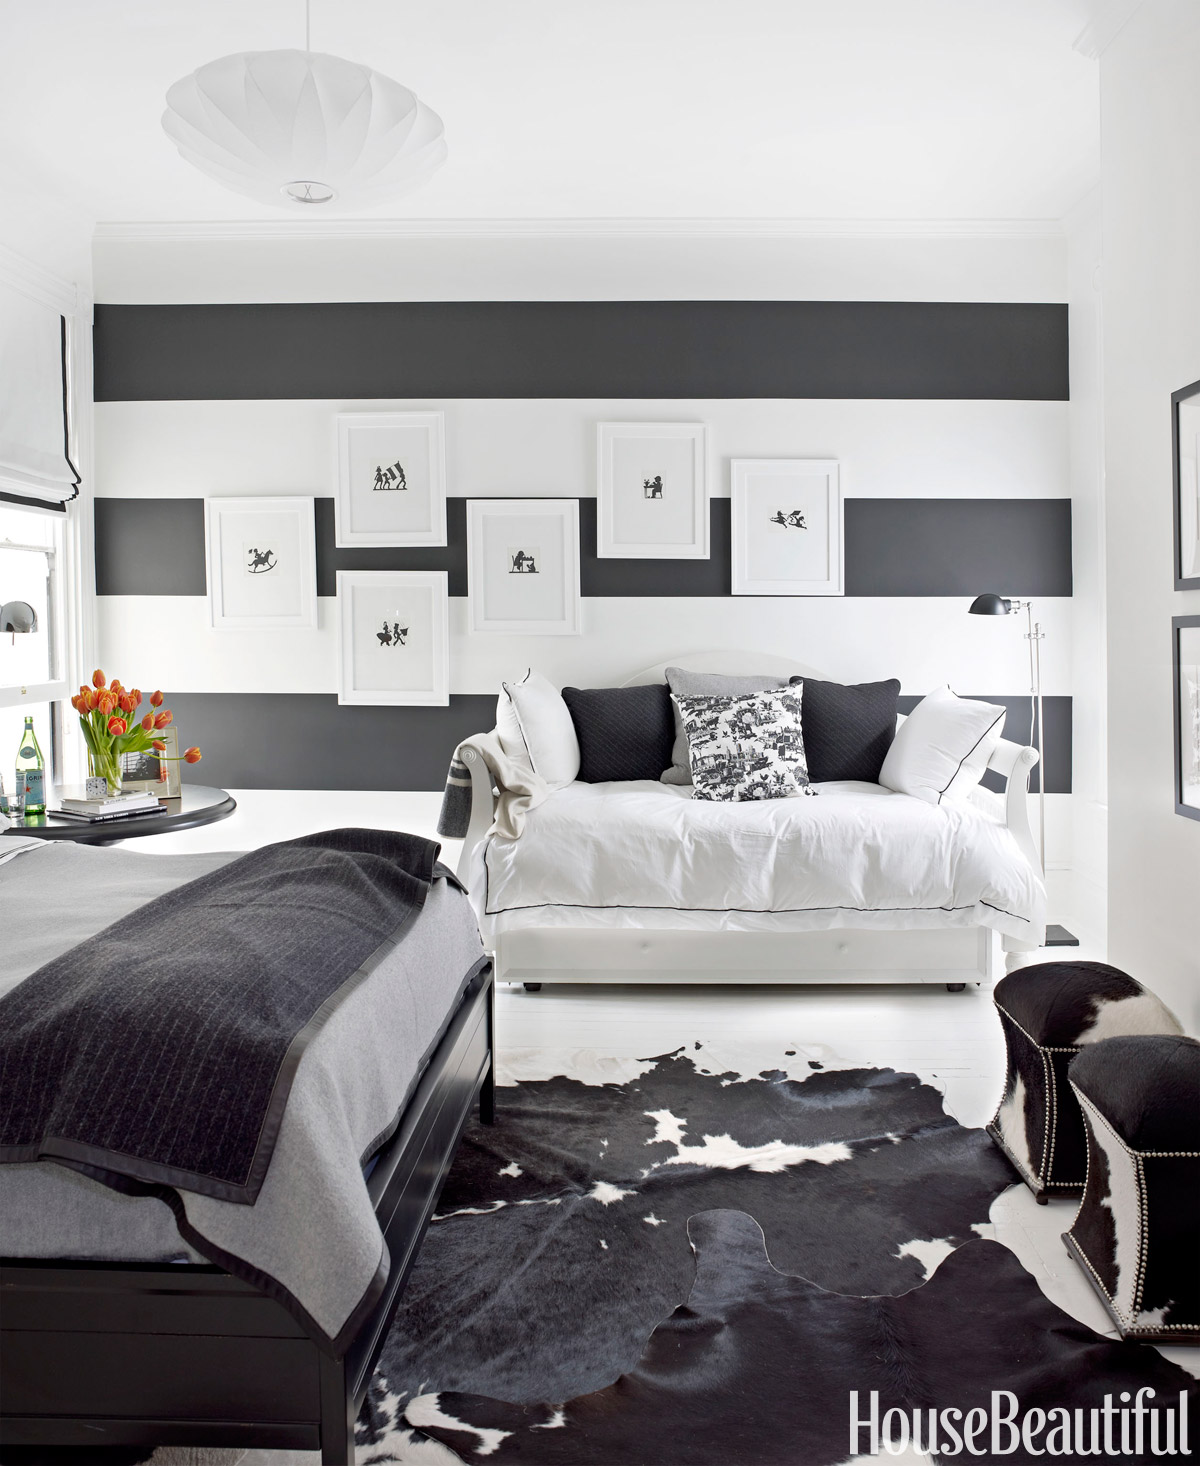 Bedroom Decorating Ideas Black And Blue black and white designer rooms - black and white decorating ideas